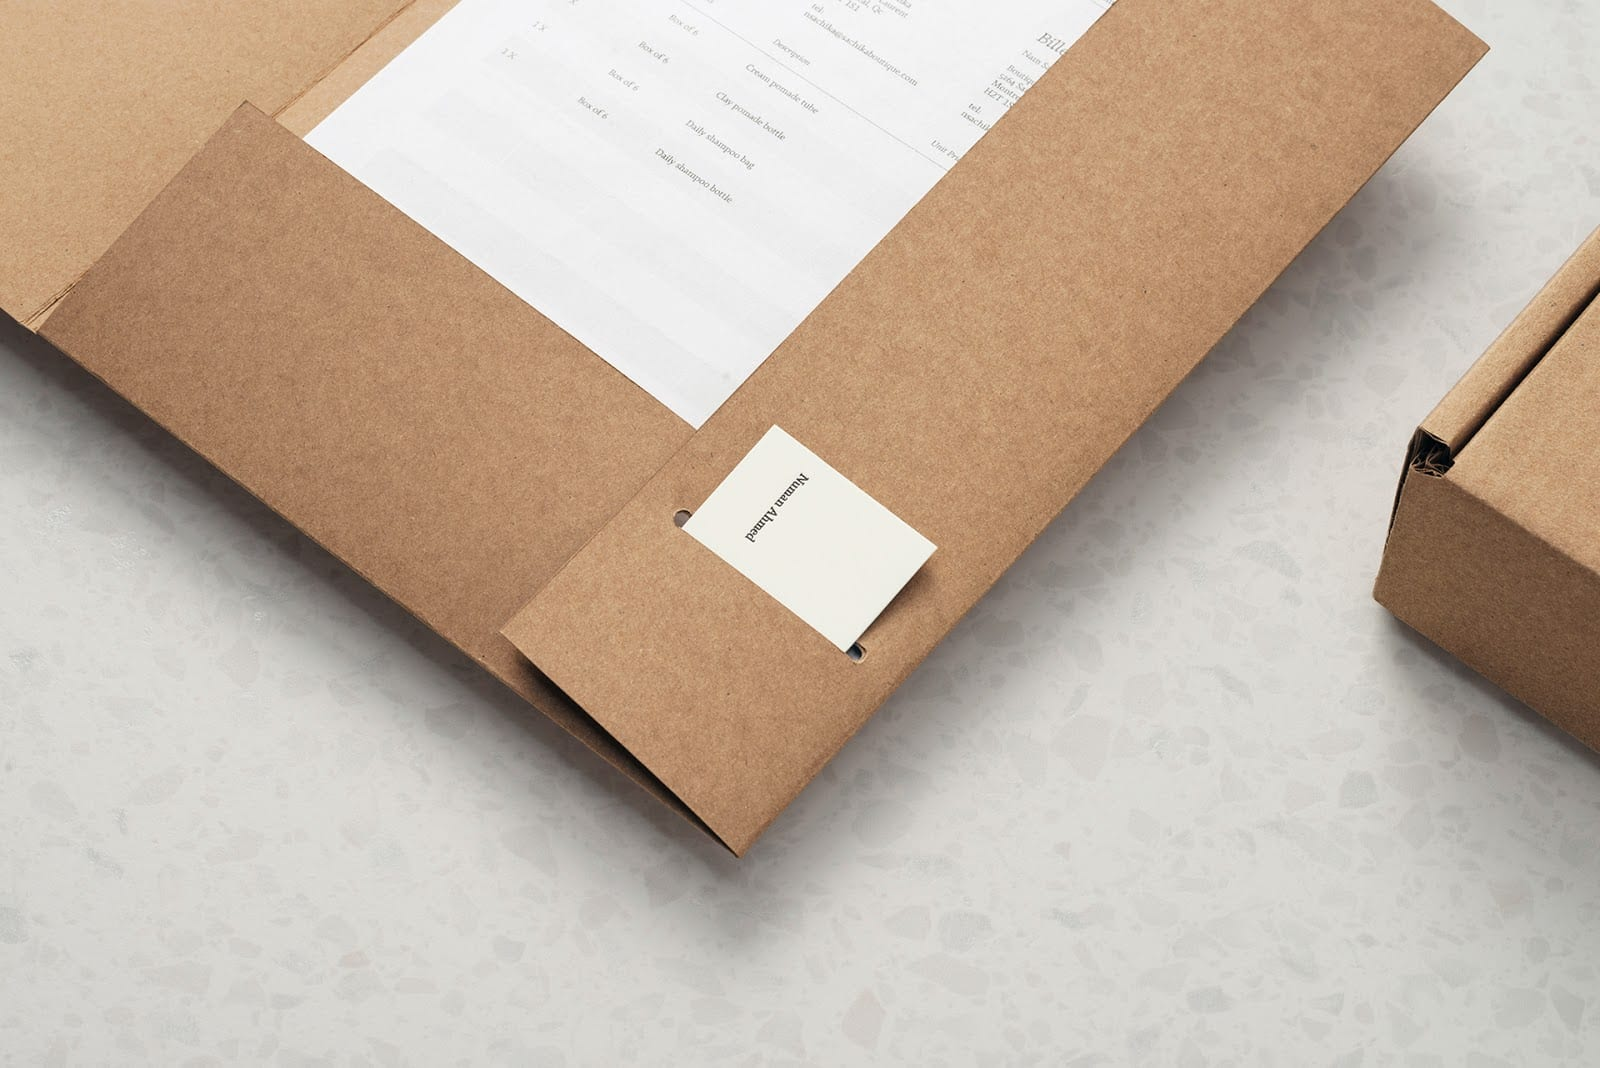 Wise Mens Care Brand Identity and Packaging 011 - Ach, tie obaly – péče Wise Men